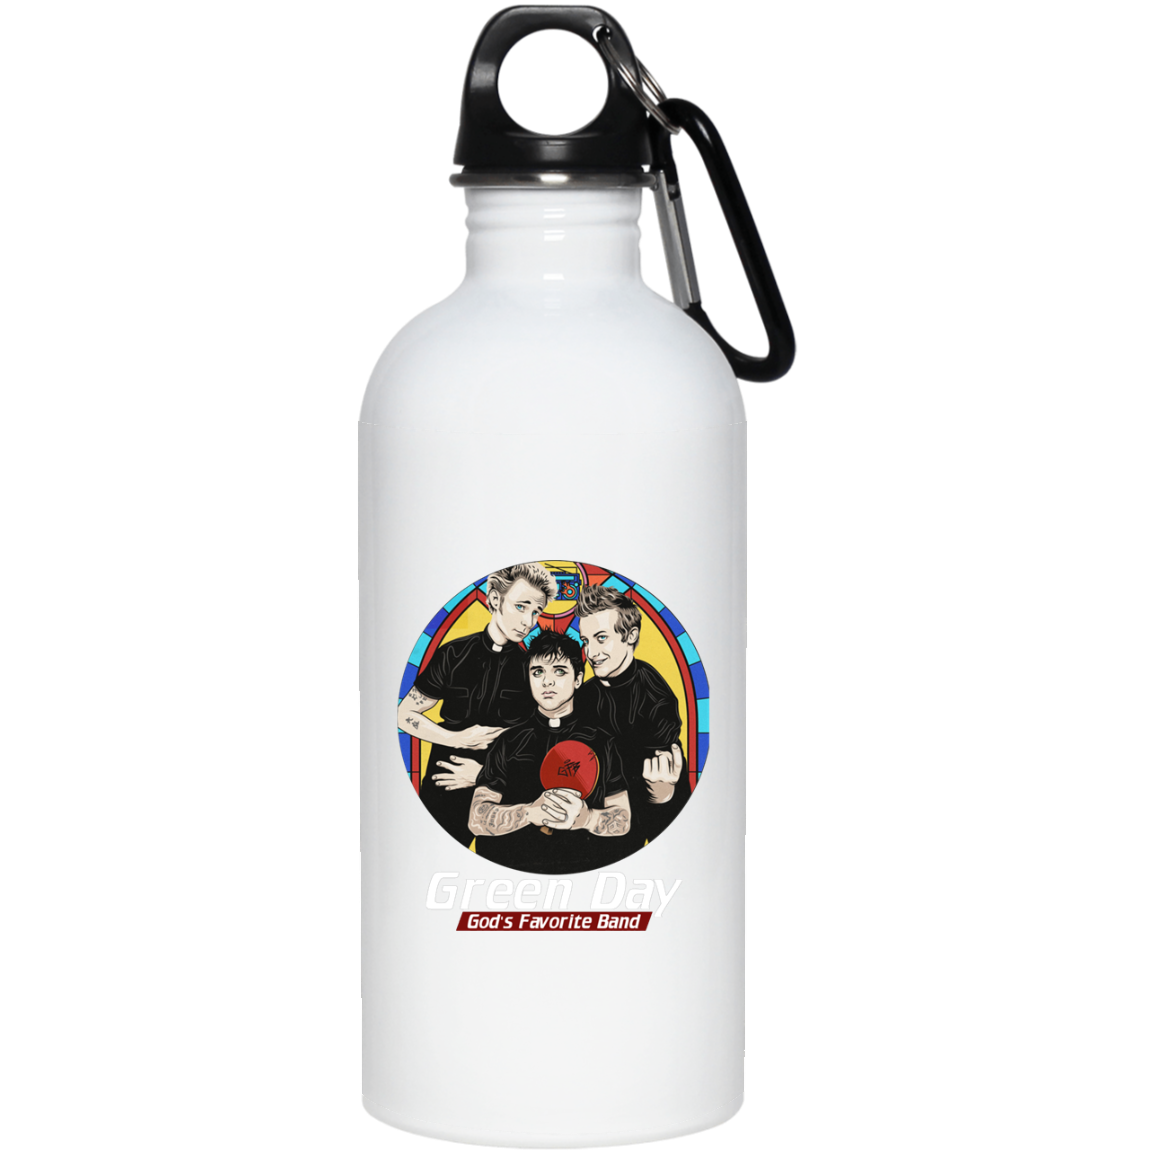 Green Day Greatest Hits God s favorite band 23663 20 oz. Stainless Steel Water Bottle